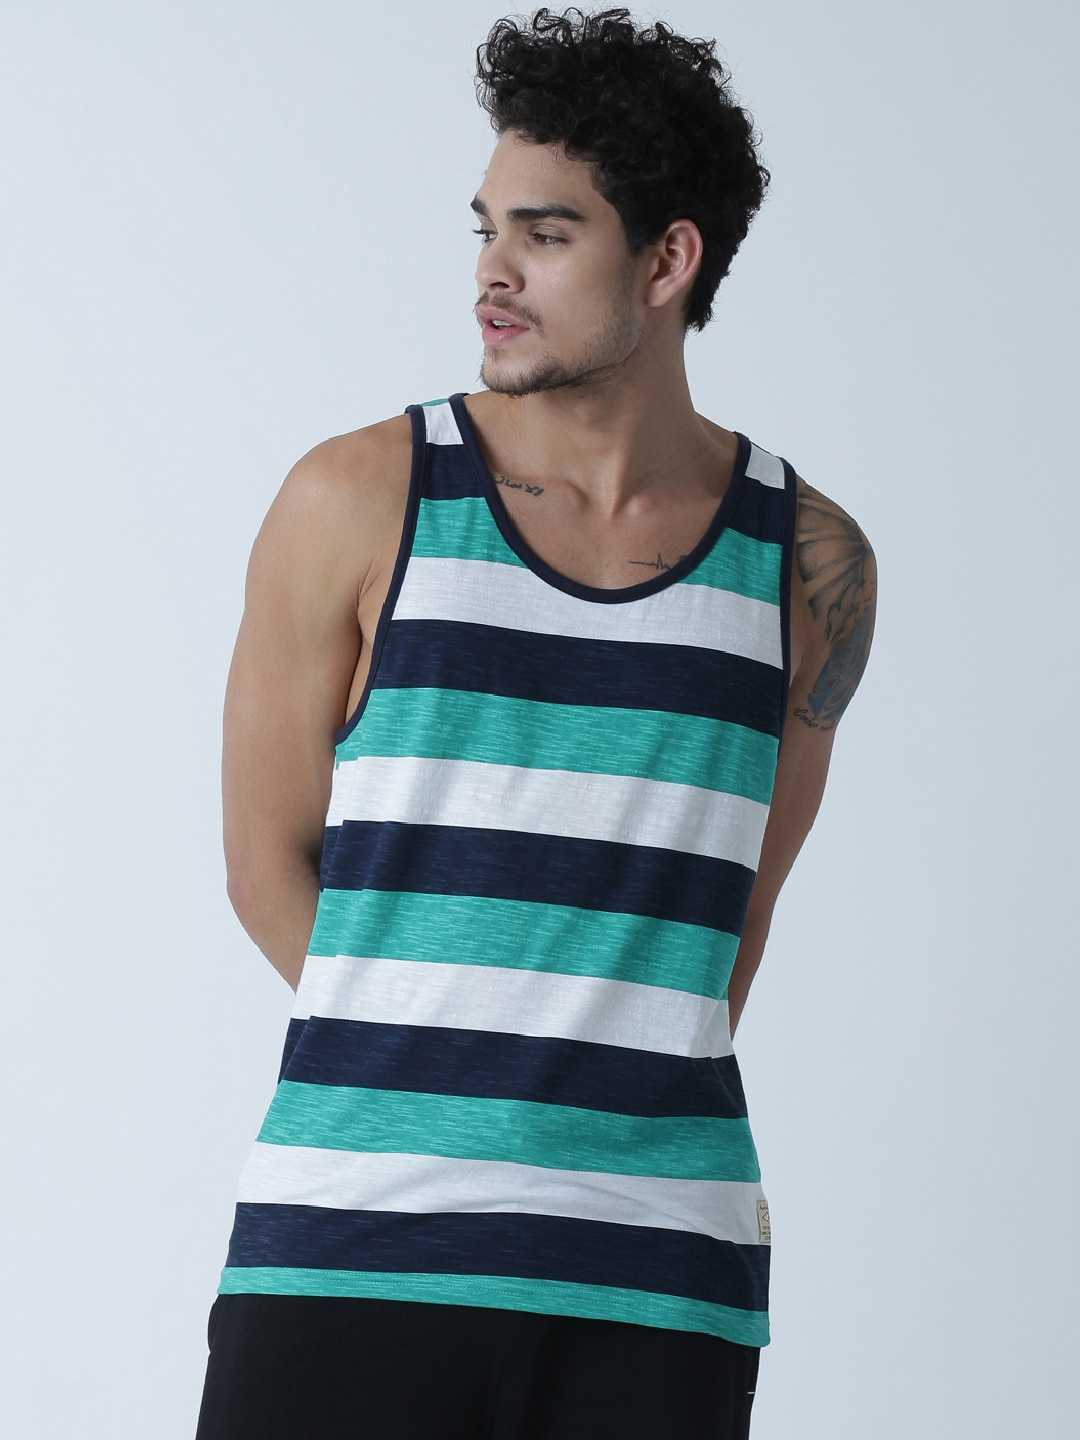 Masculino Latino White Striped T-shirt MLF4033-A image